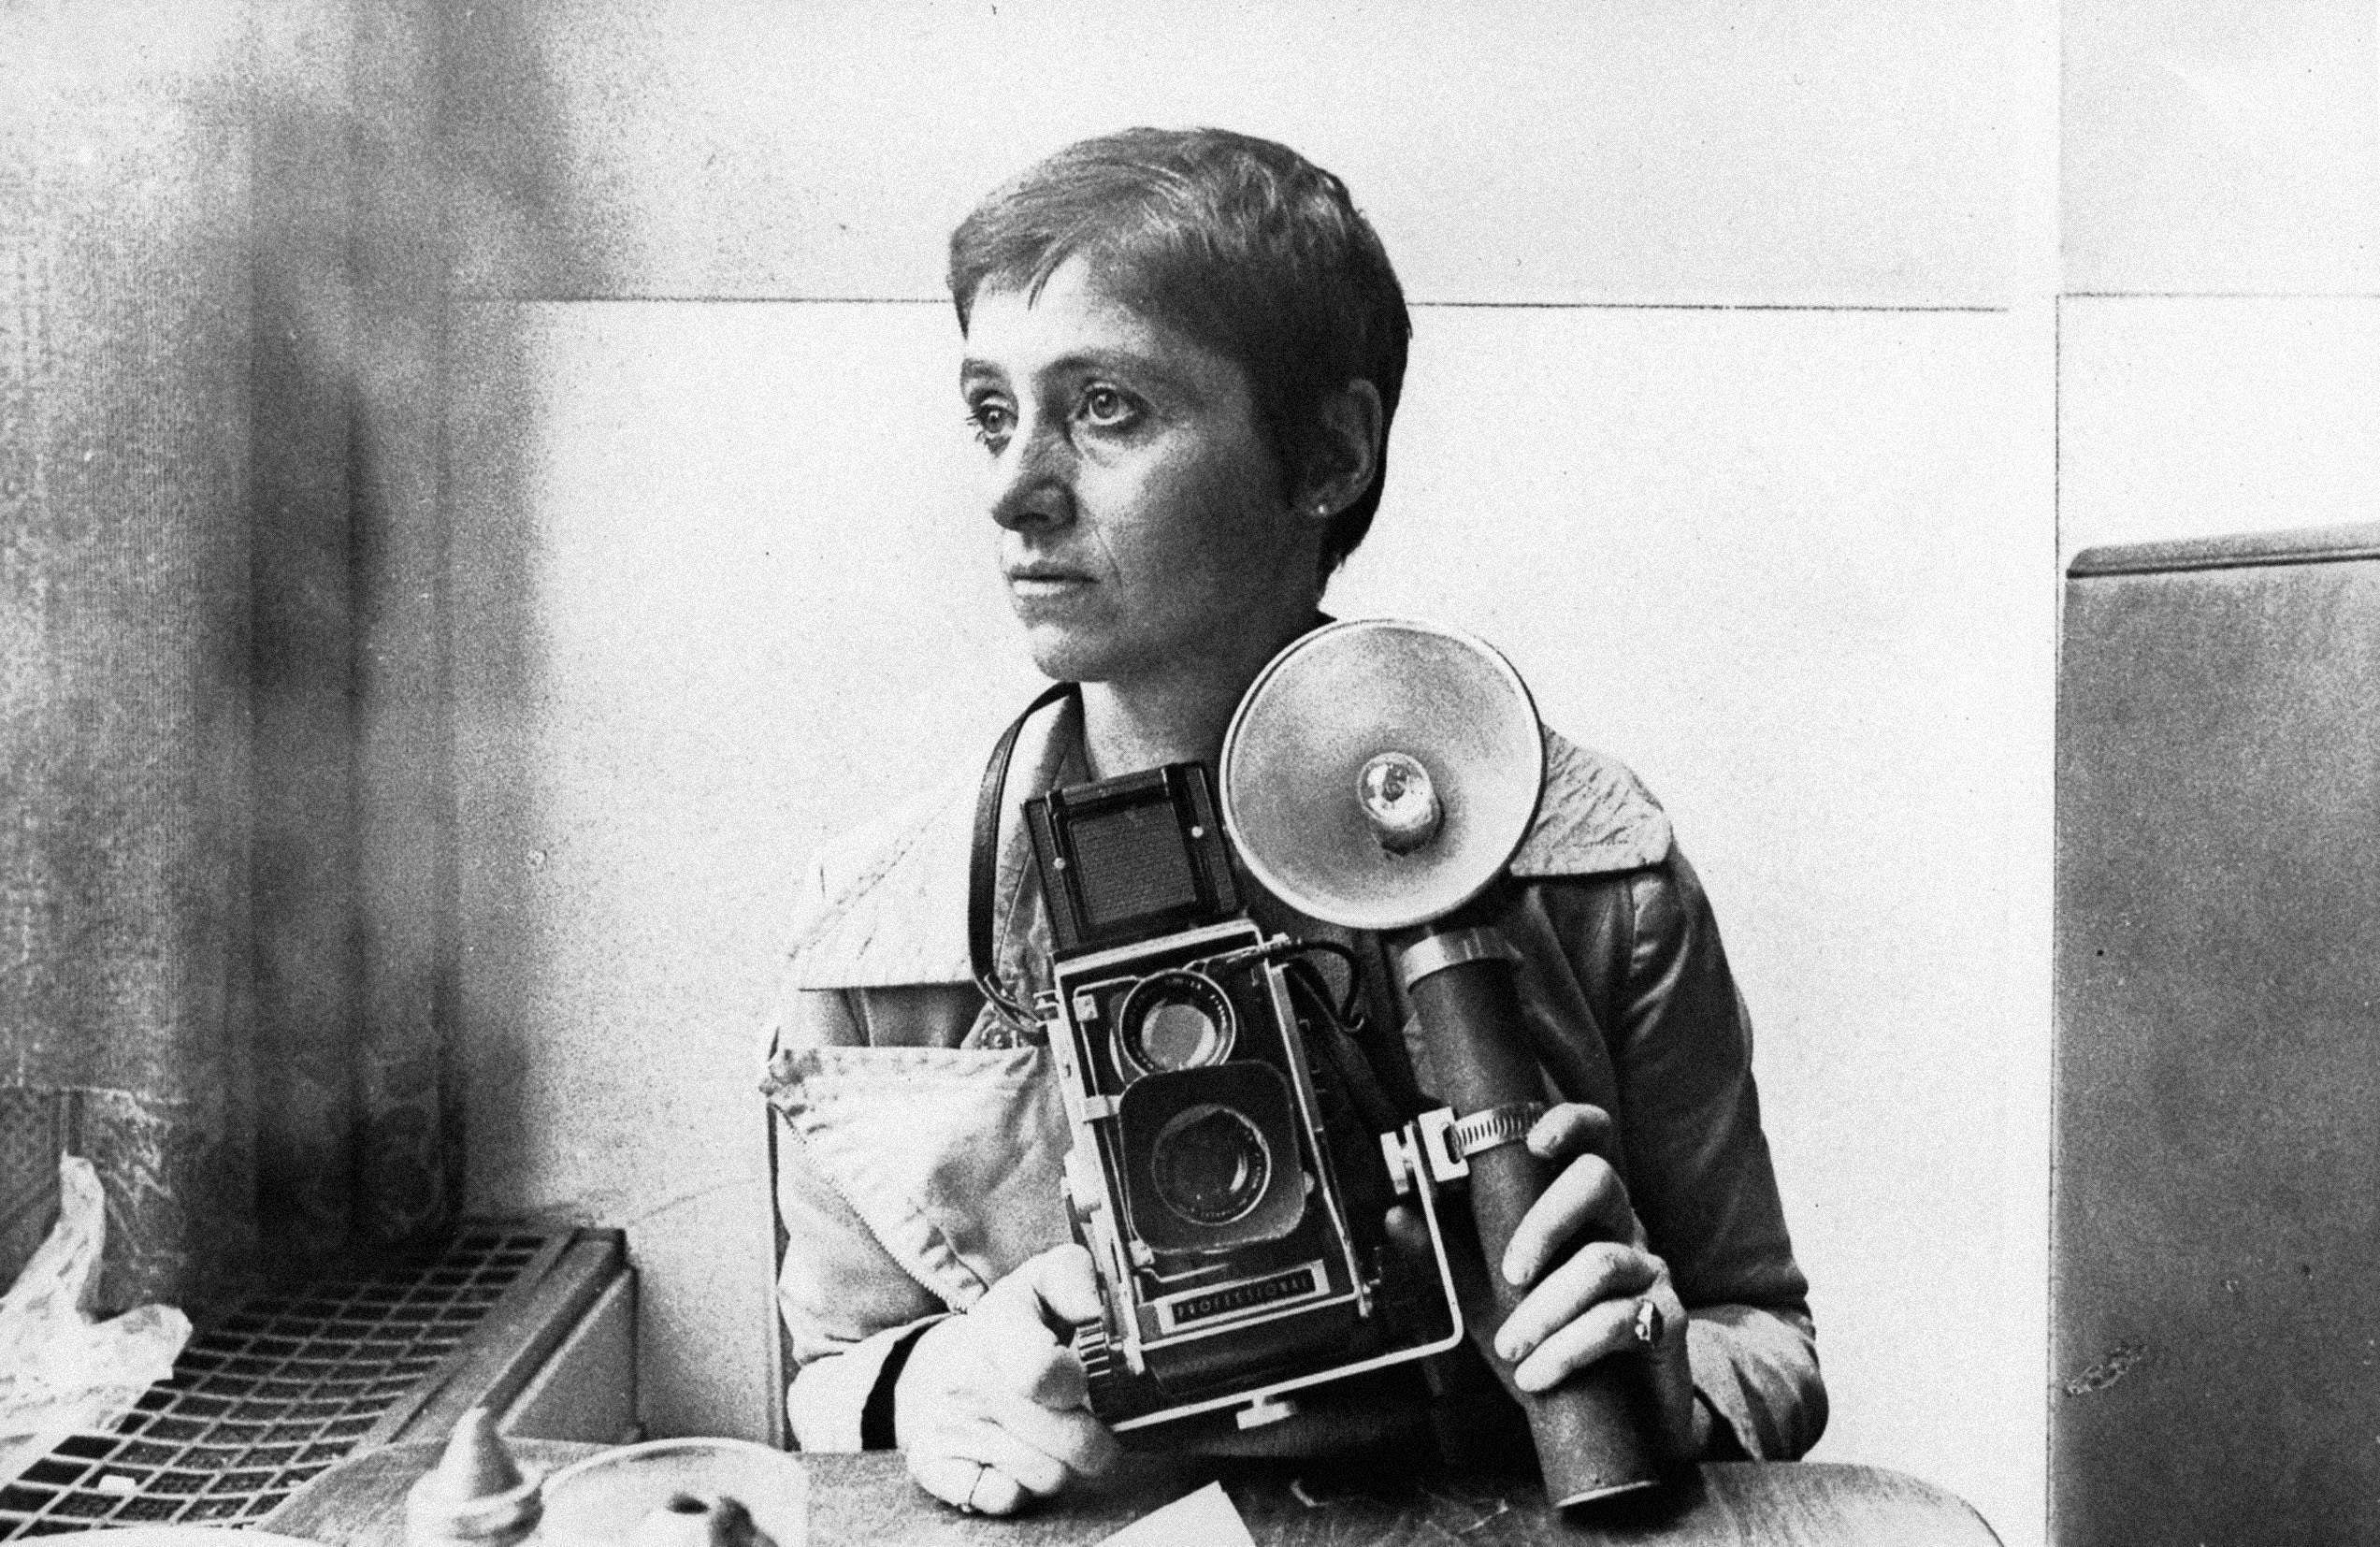 Beauty and the freak: inside the awful, wonderful world of Diane Arbus